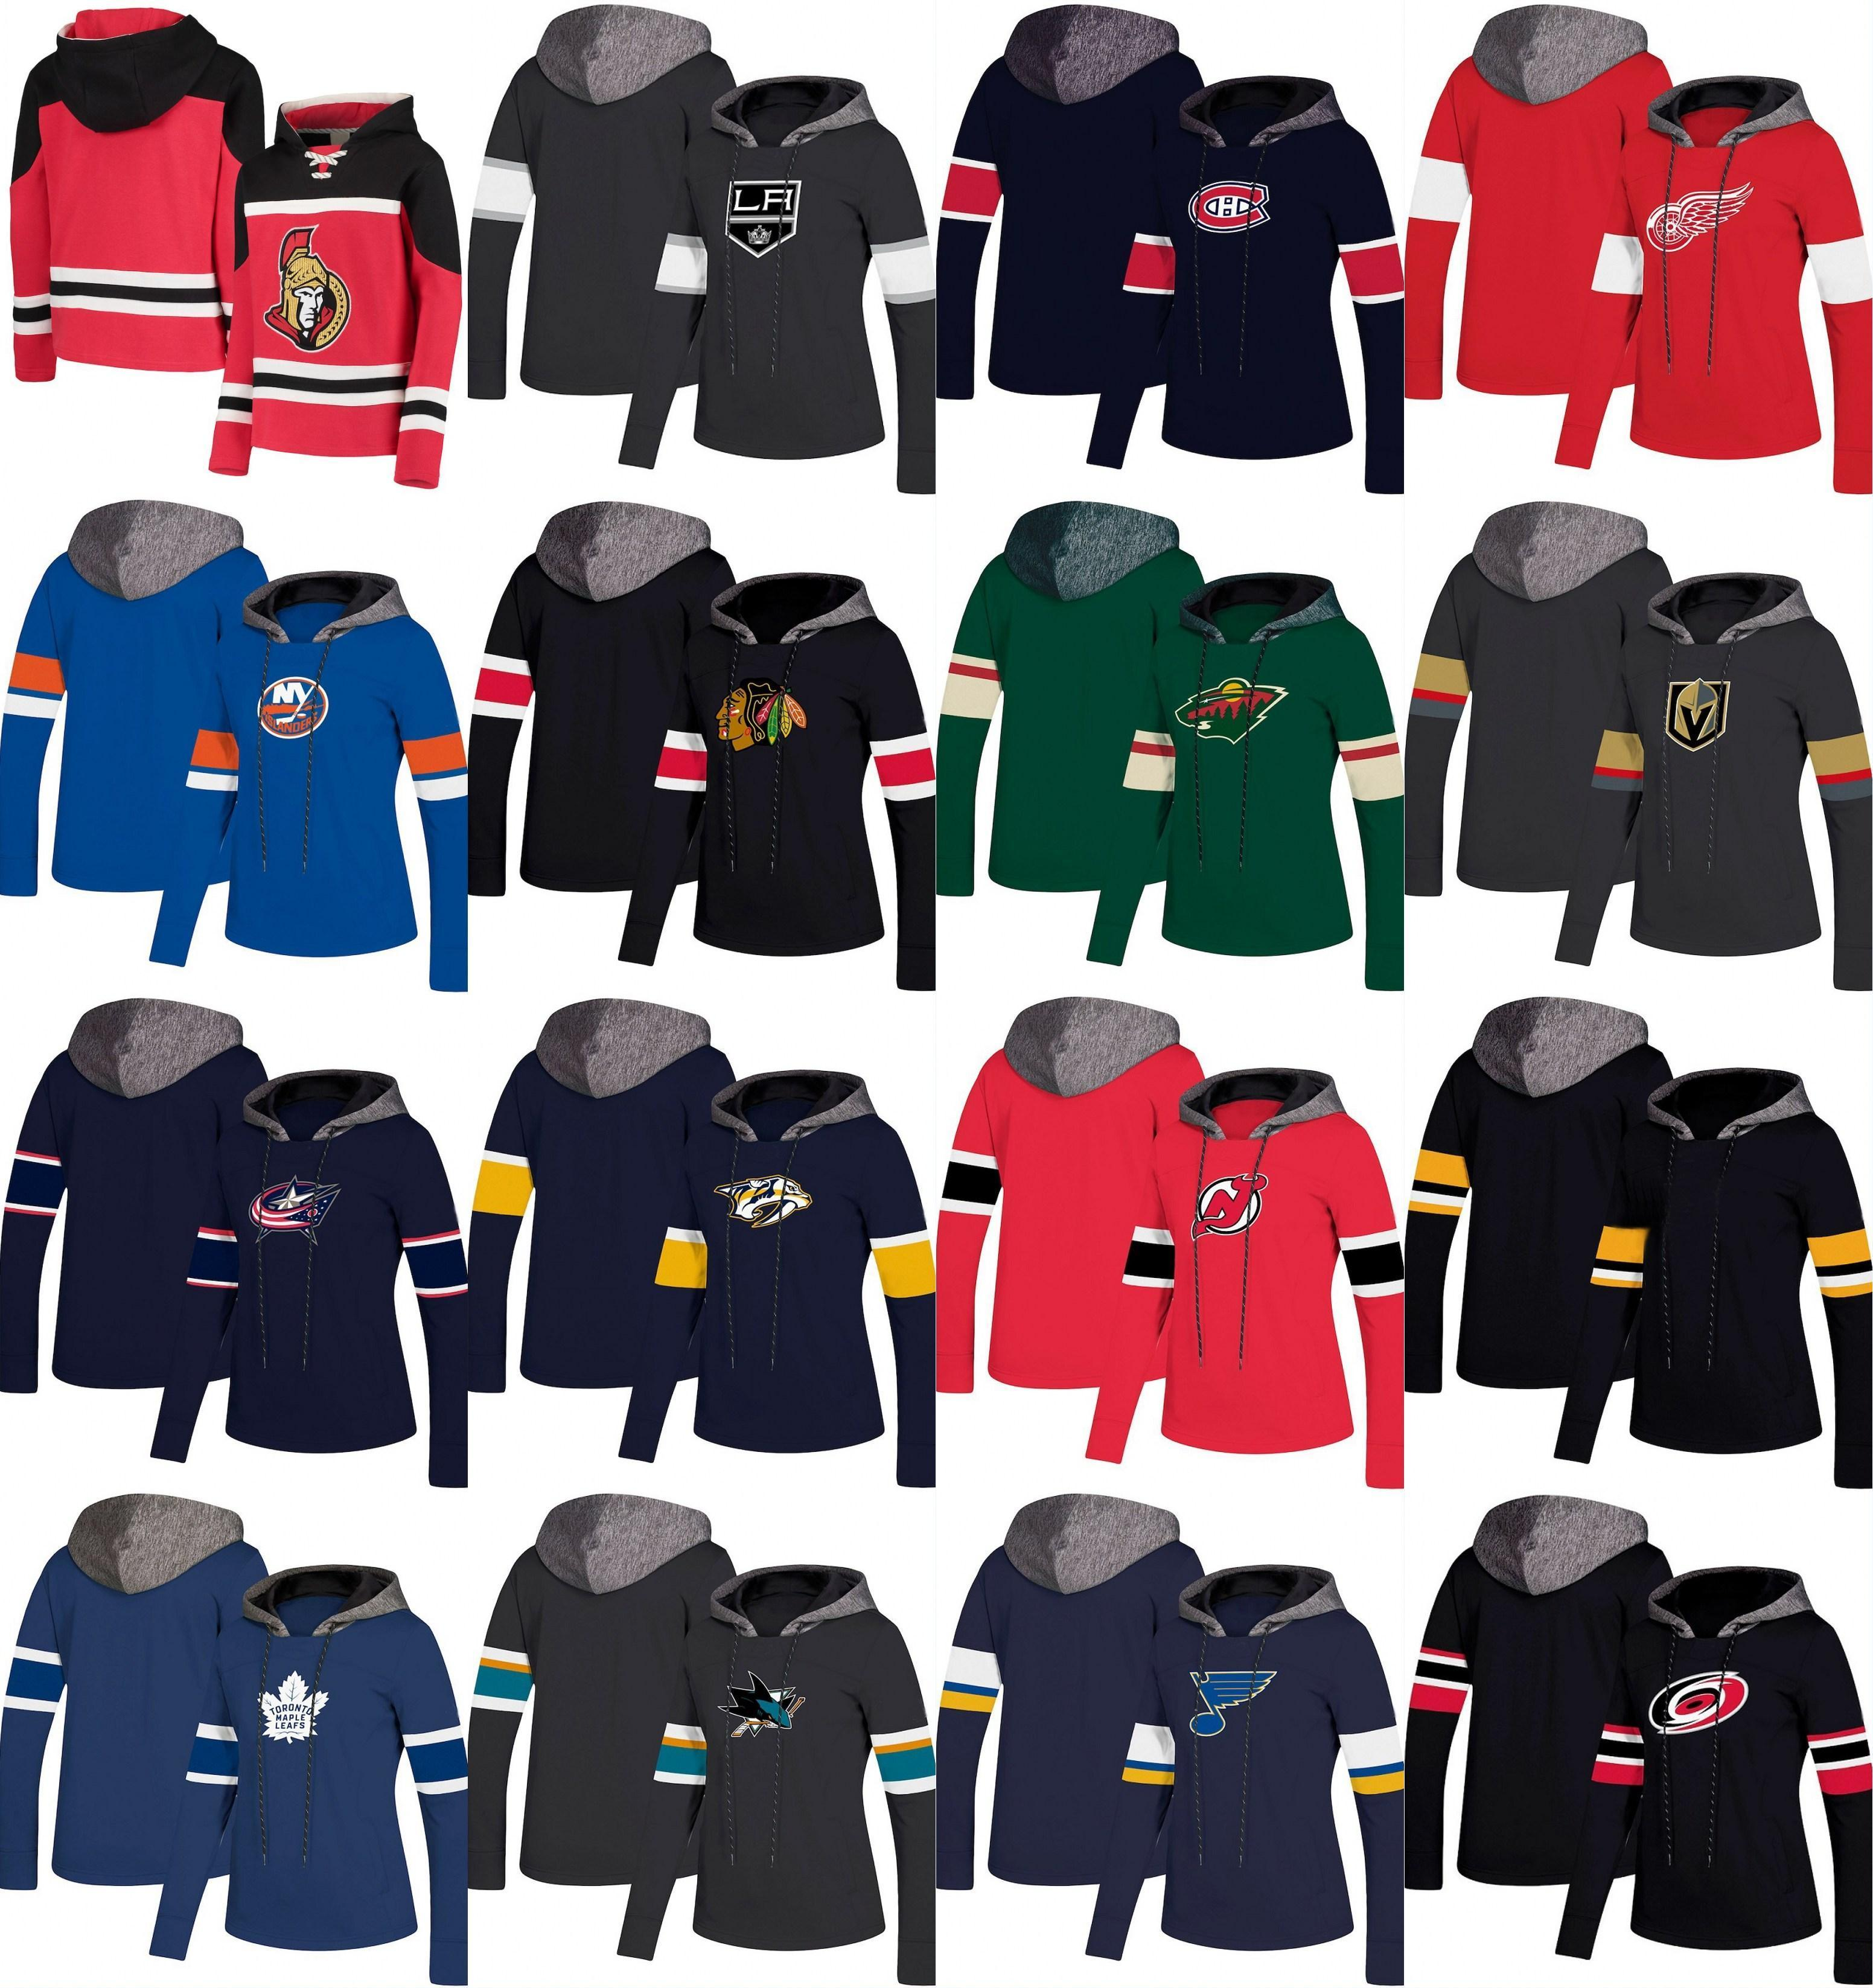 HOCKEY Sudadera con capucha para mujer NY Islands New Jersey Devils Toronto Leafs Los Angeles Reyes Detroit Red Wings Montreal Canadiens